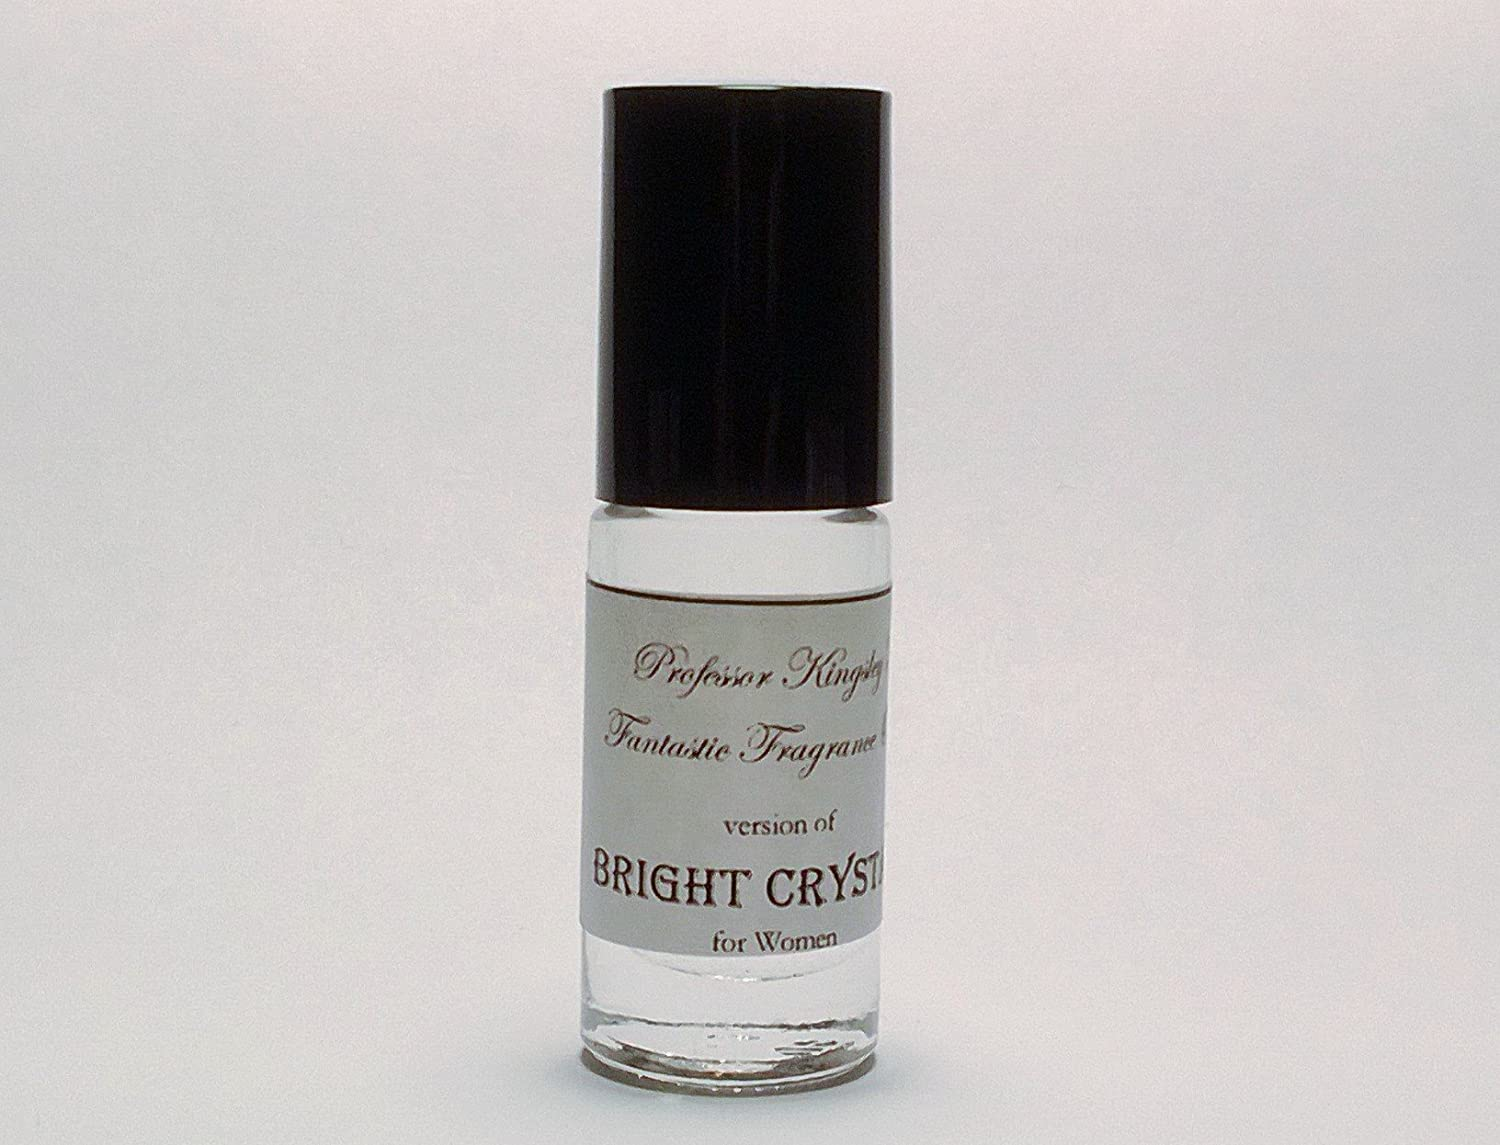 Professor Kingsley's Impression of Bright Crystal for Women. Concentrated Fragrance Oil. (1/6 oz Concentrated Roll On)